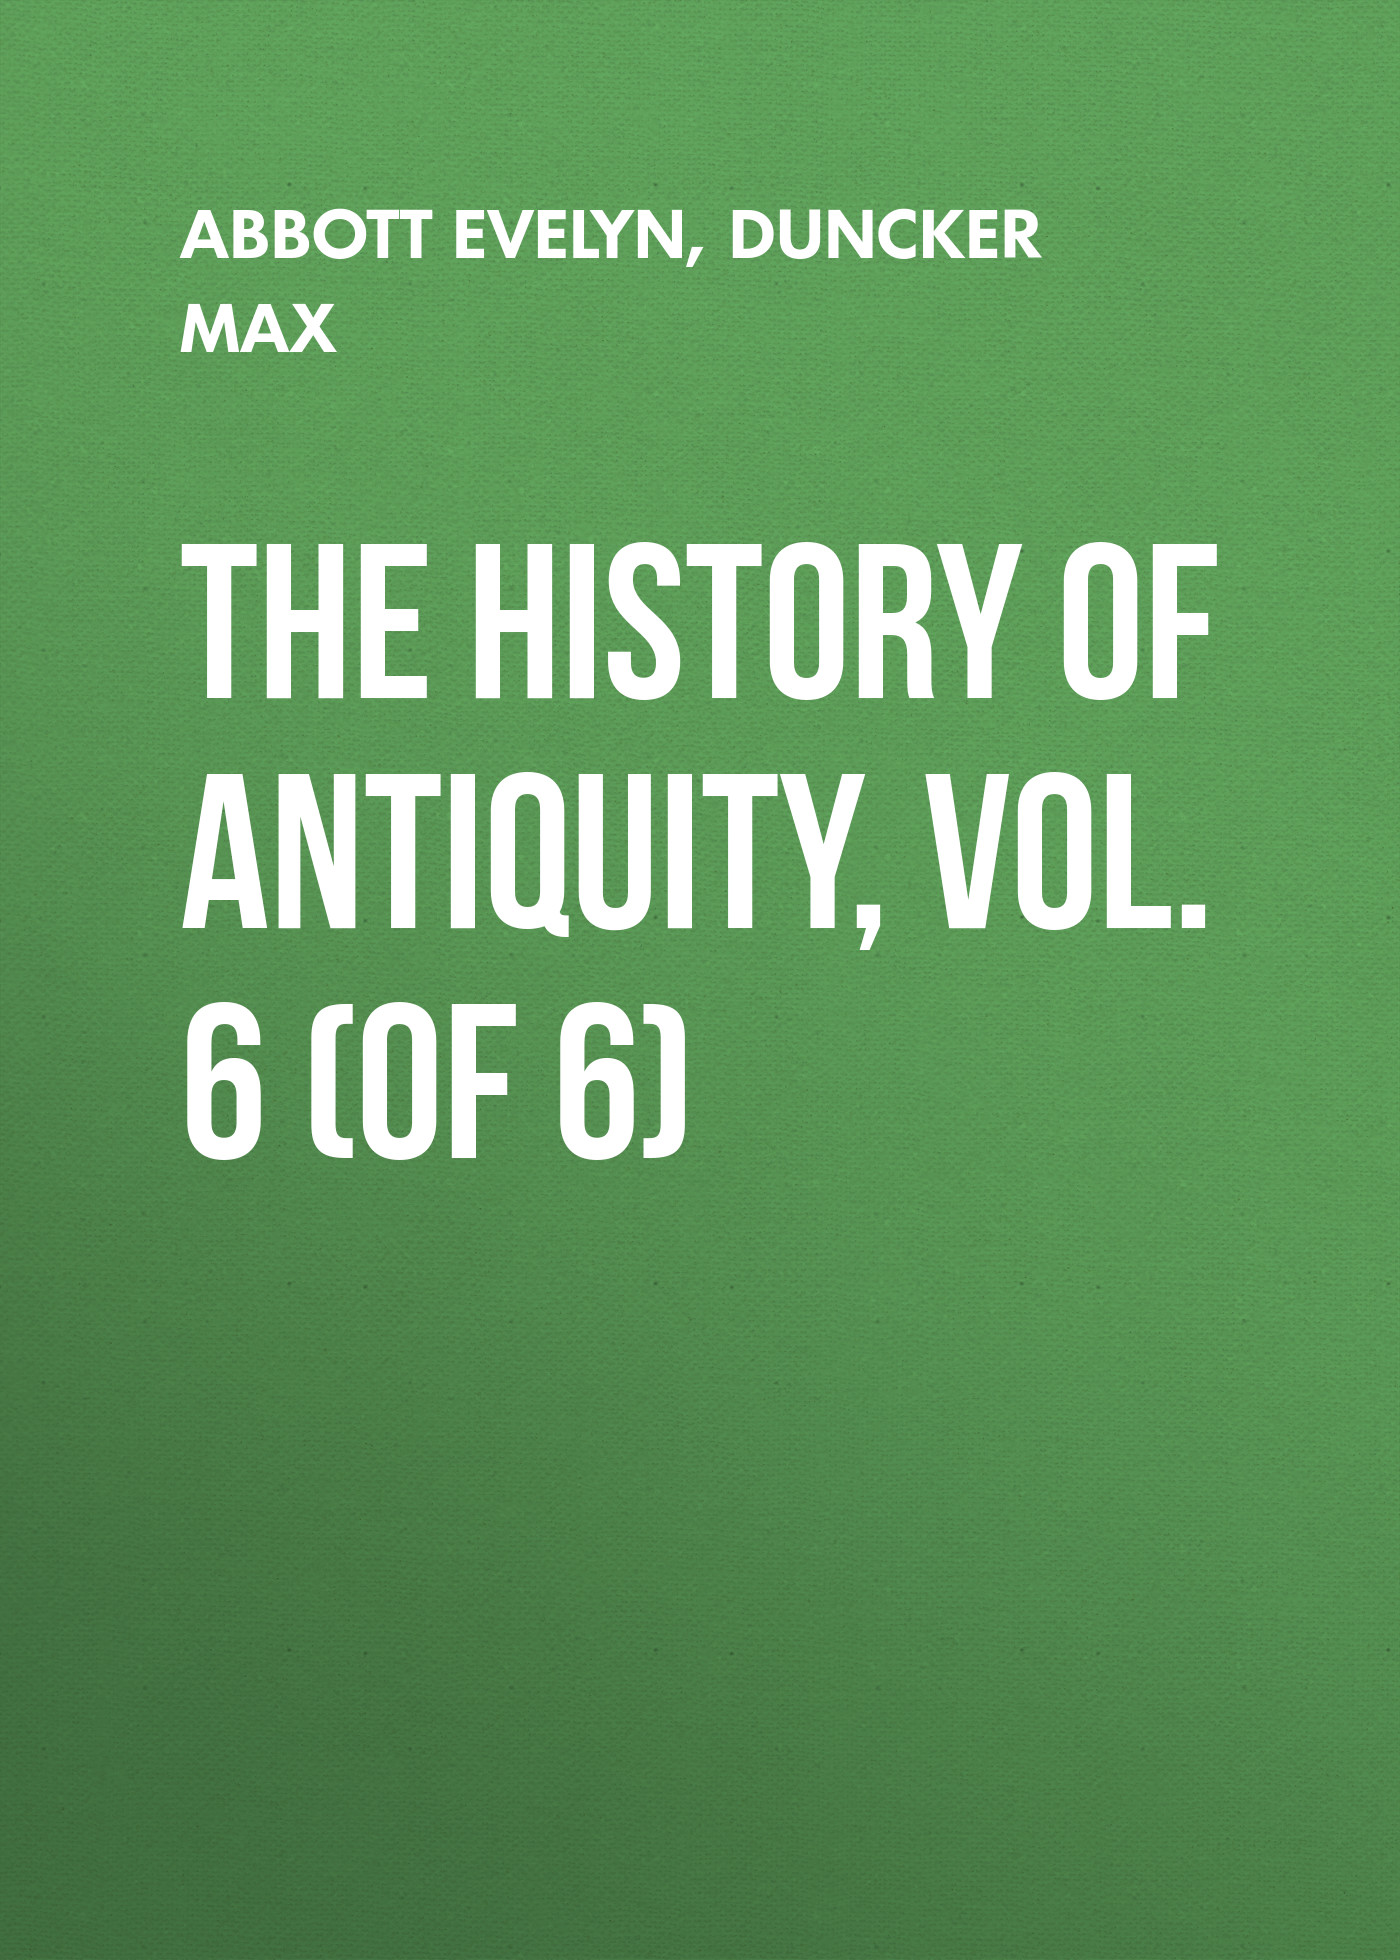 Duncker Max The History of Antiquity, Vol. 6 (of 6) archibald bower the history of the popes vol 6